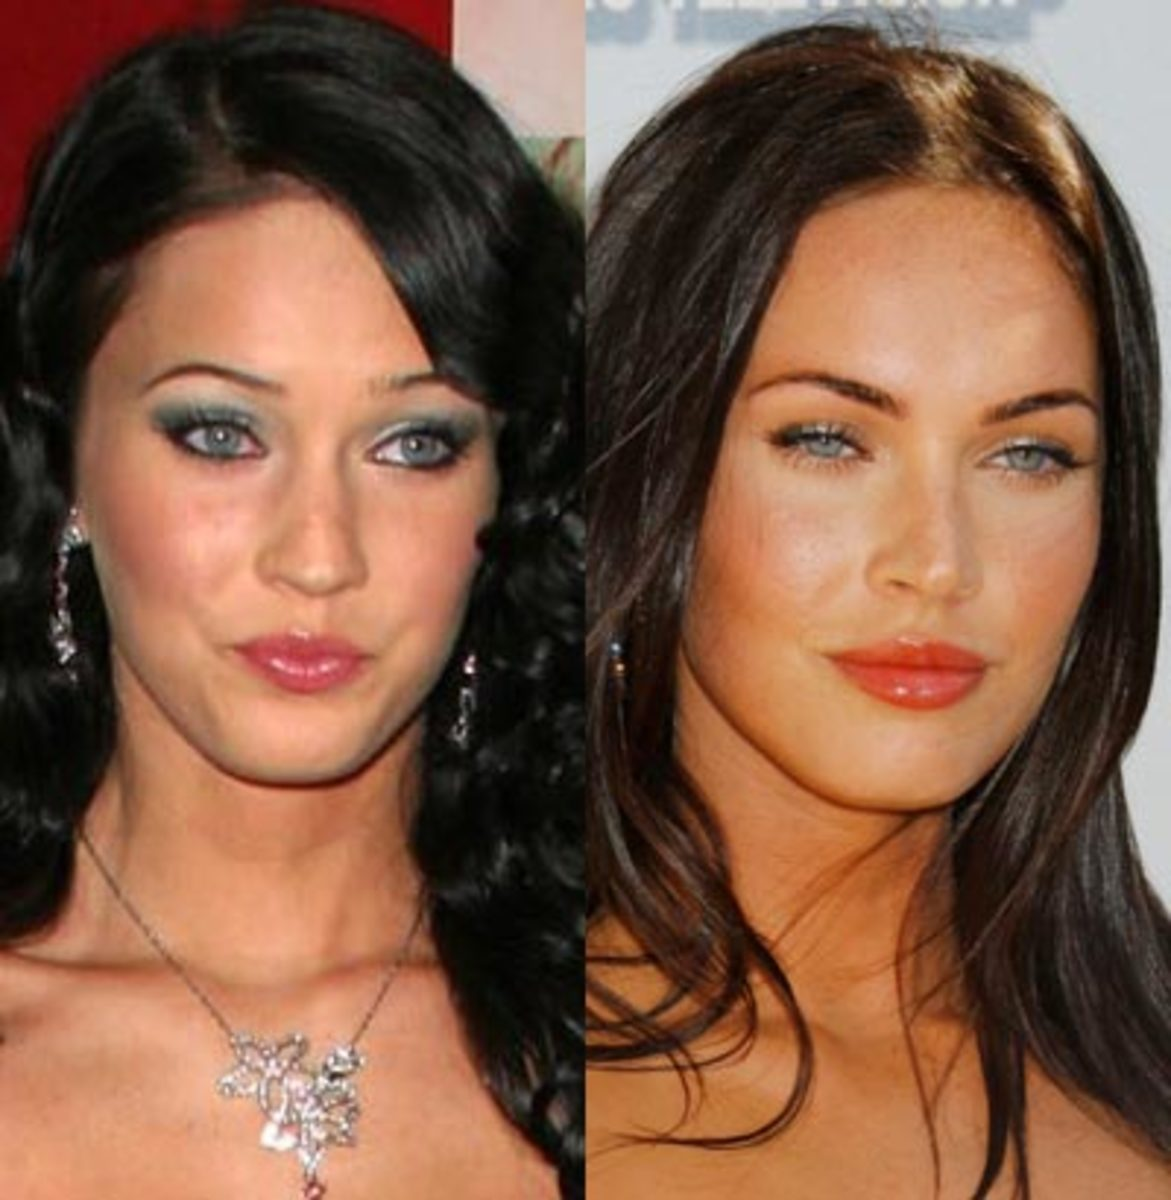 Actress Megan Fox before plastic surgery (left) and after.